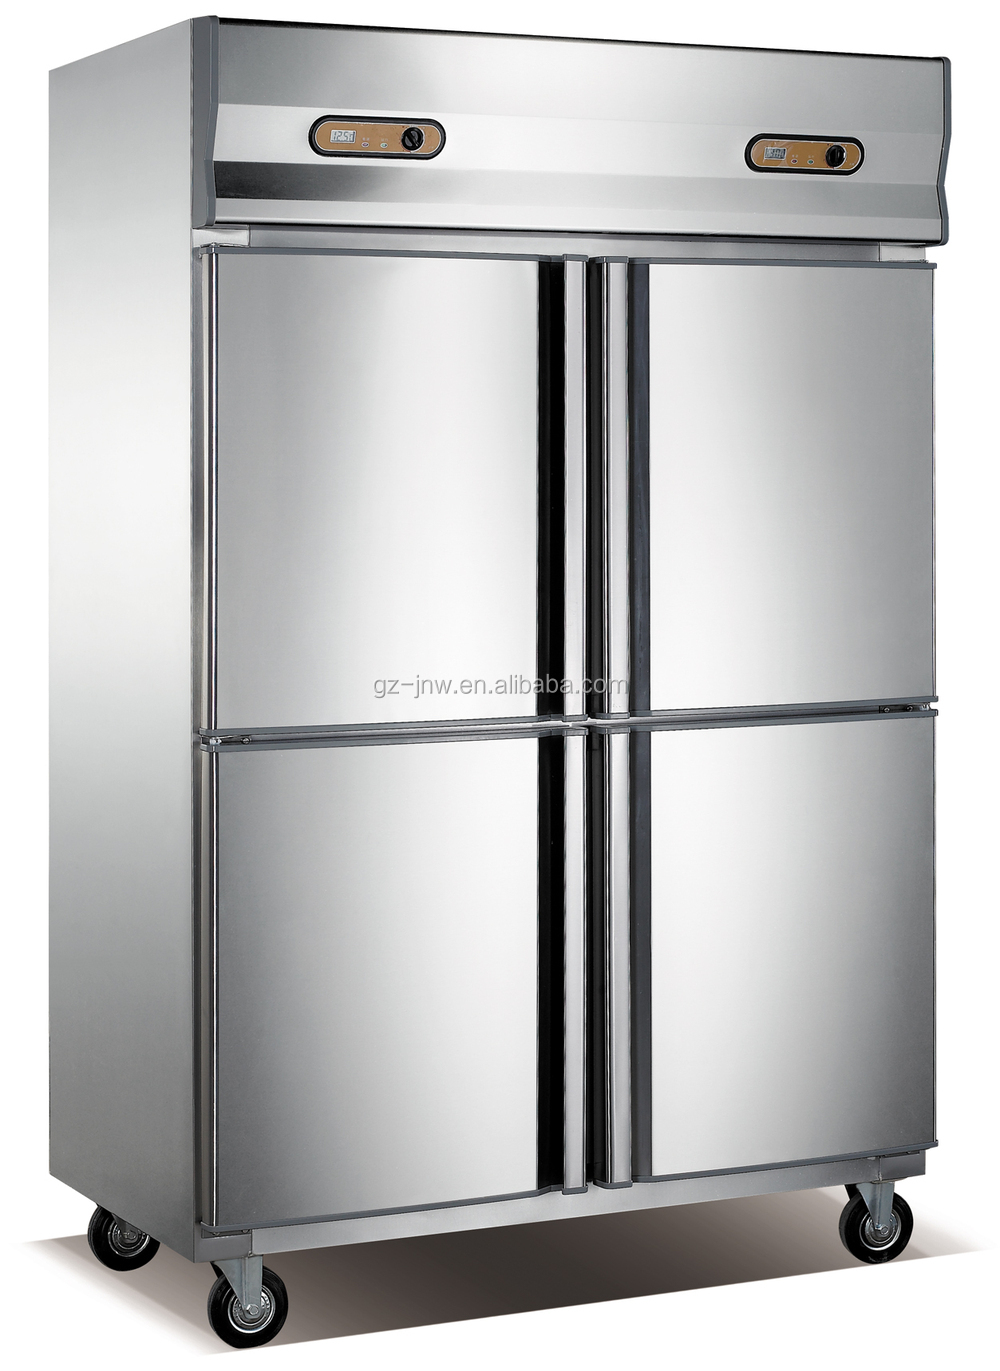 Four Door Commercial Refrigerator With Price/Commercial Refrigerators For  Sale/Hotel Refrigerator Cabinet Ideas